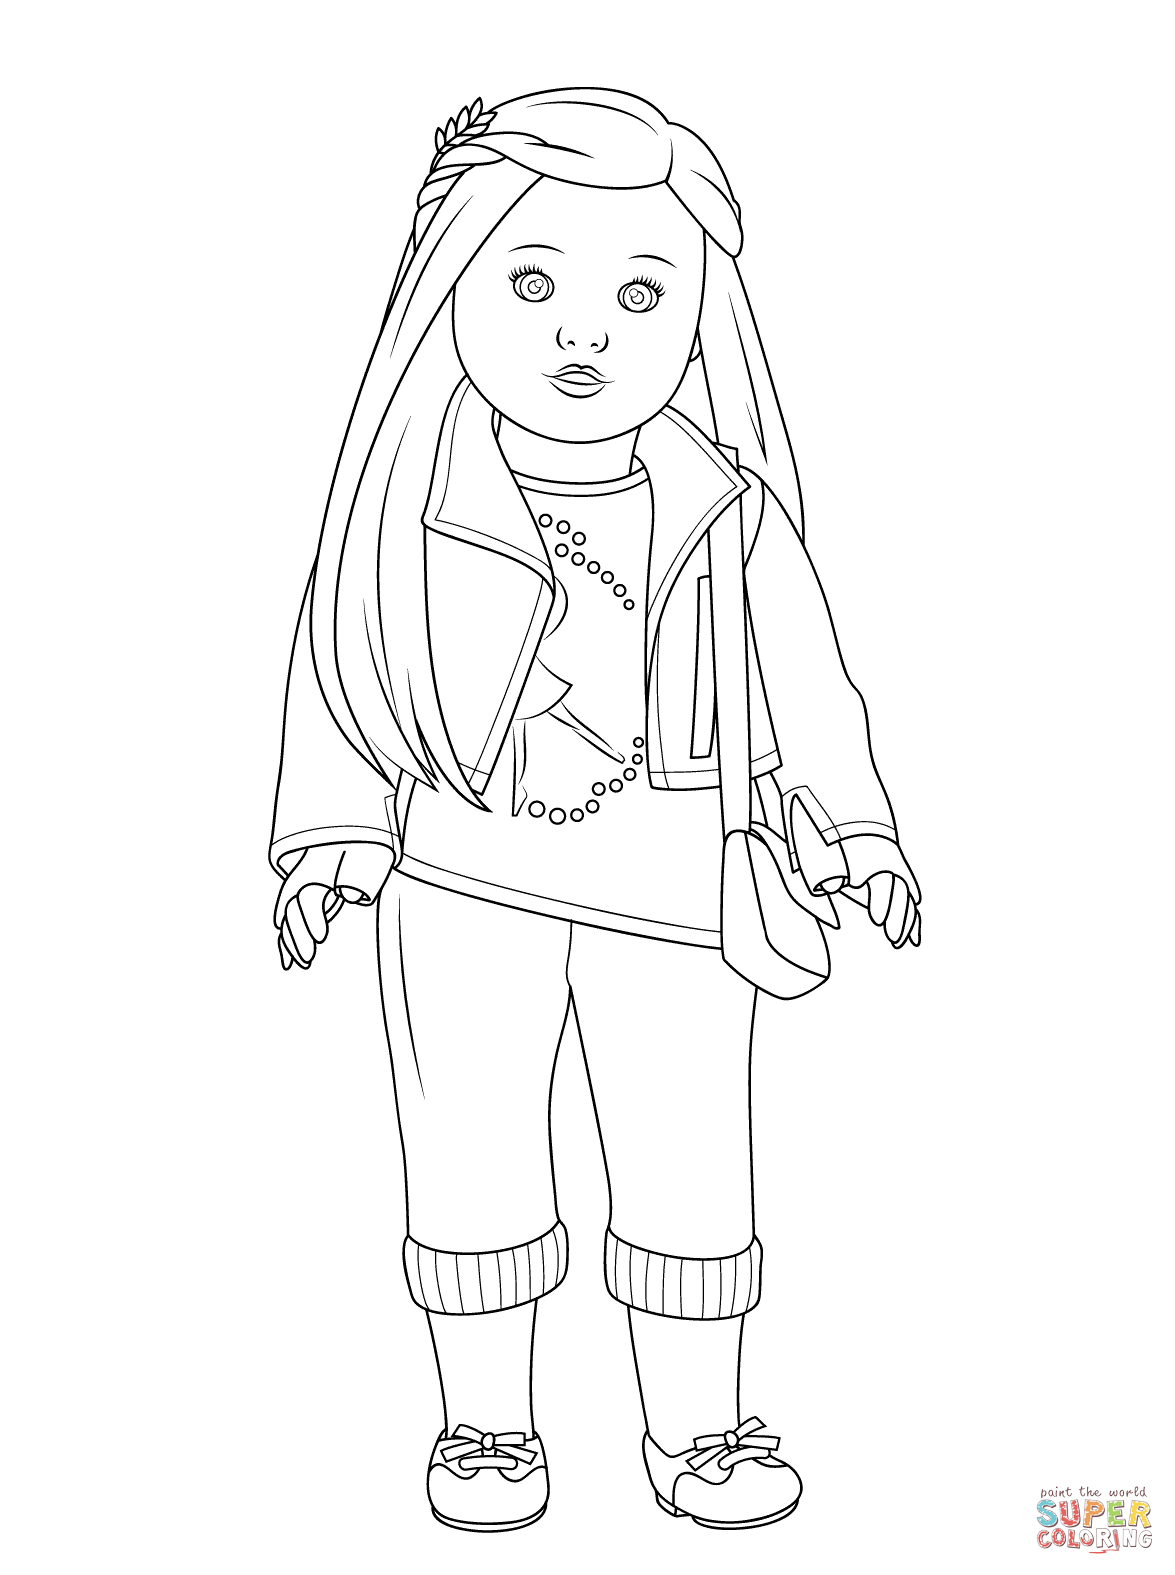 doll colouring pages doll coloring pages to download and print for free doll pages colouring